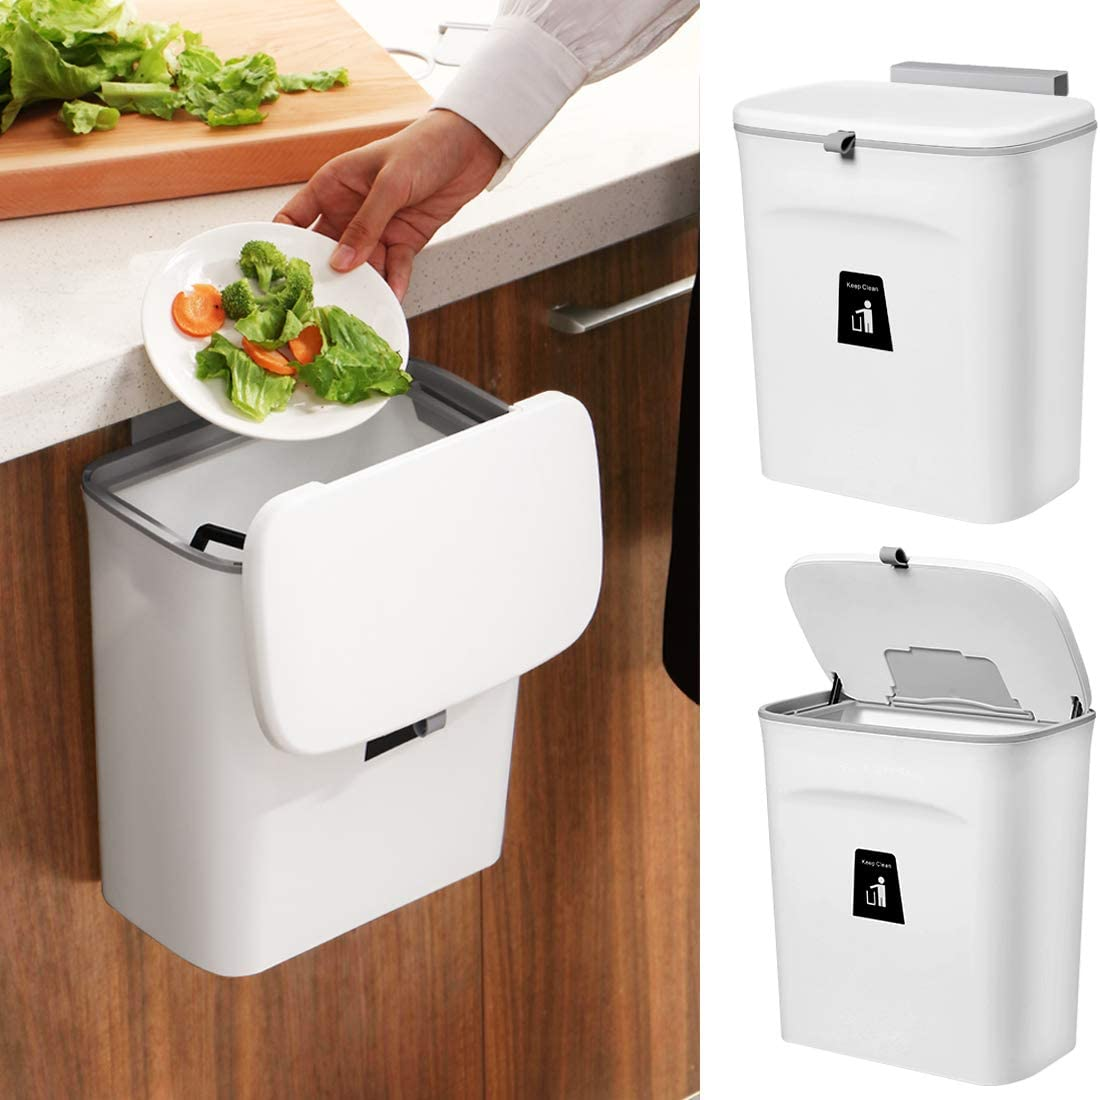 2.4 Gallon Hanging Kitchen Compost Bin for Counter Top or Under Sink, Wall-Mounted Counter Small Trash Can with Lid for Cupboard,Bedroom,Office,Camping.Mountable Indoor Compost Bucket (White)